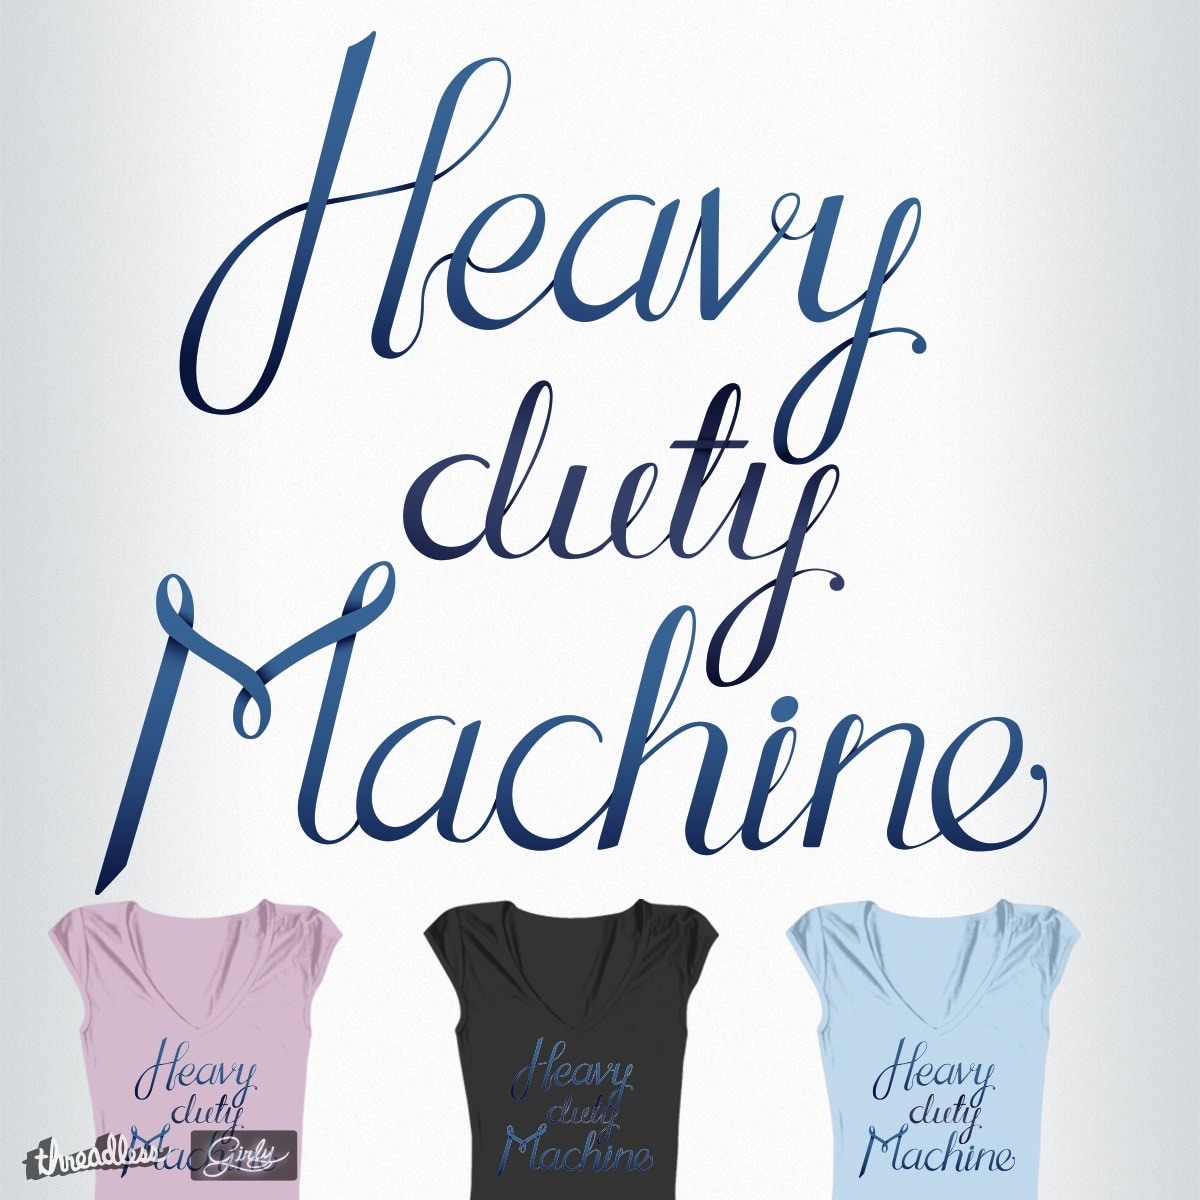 Heavy duty Machine by Ross_pl on Threadless